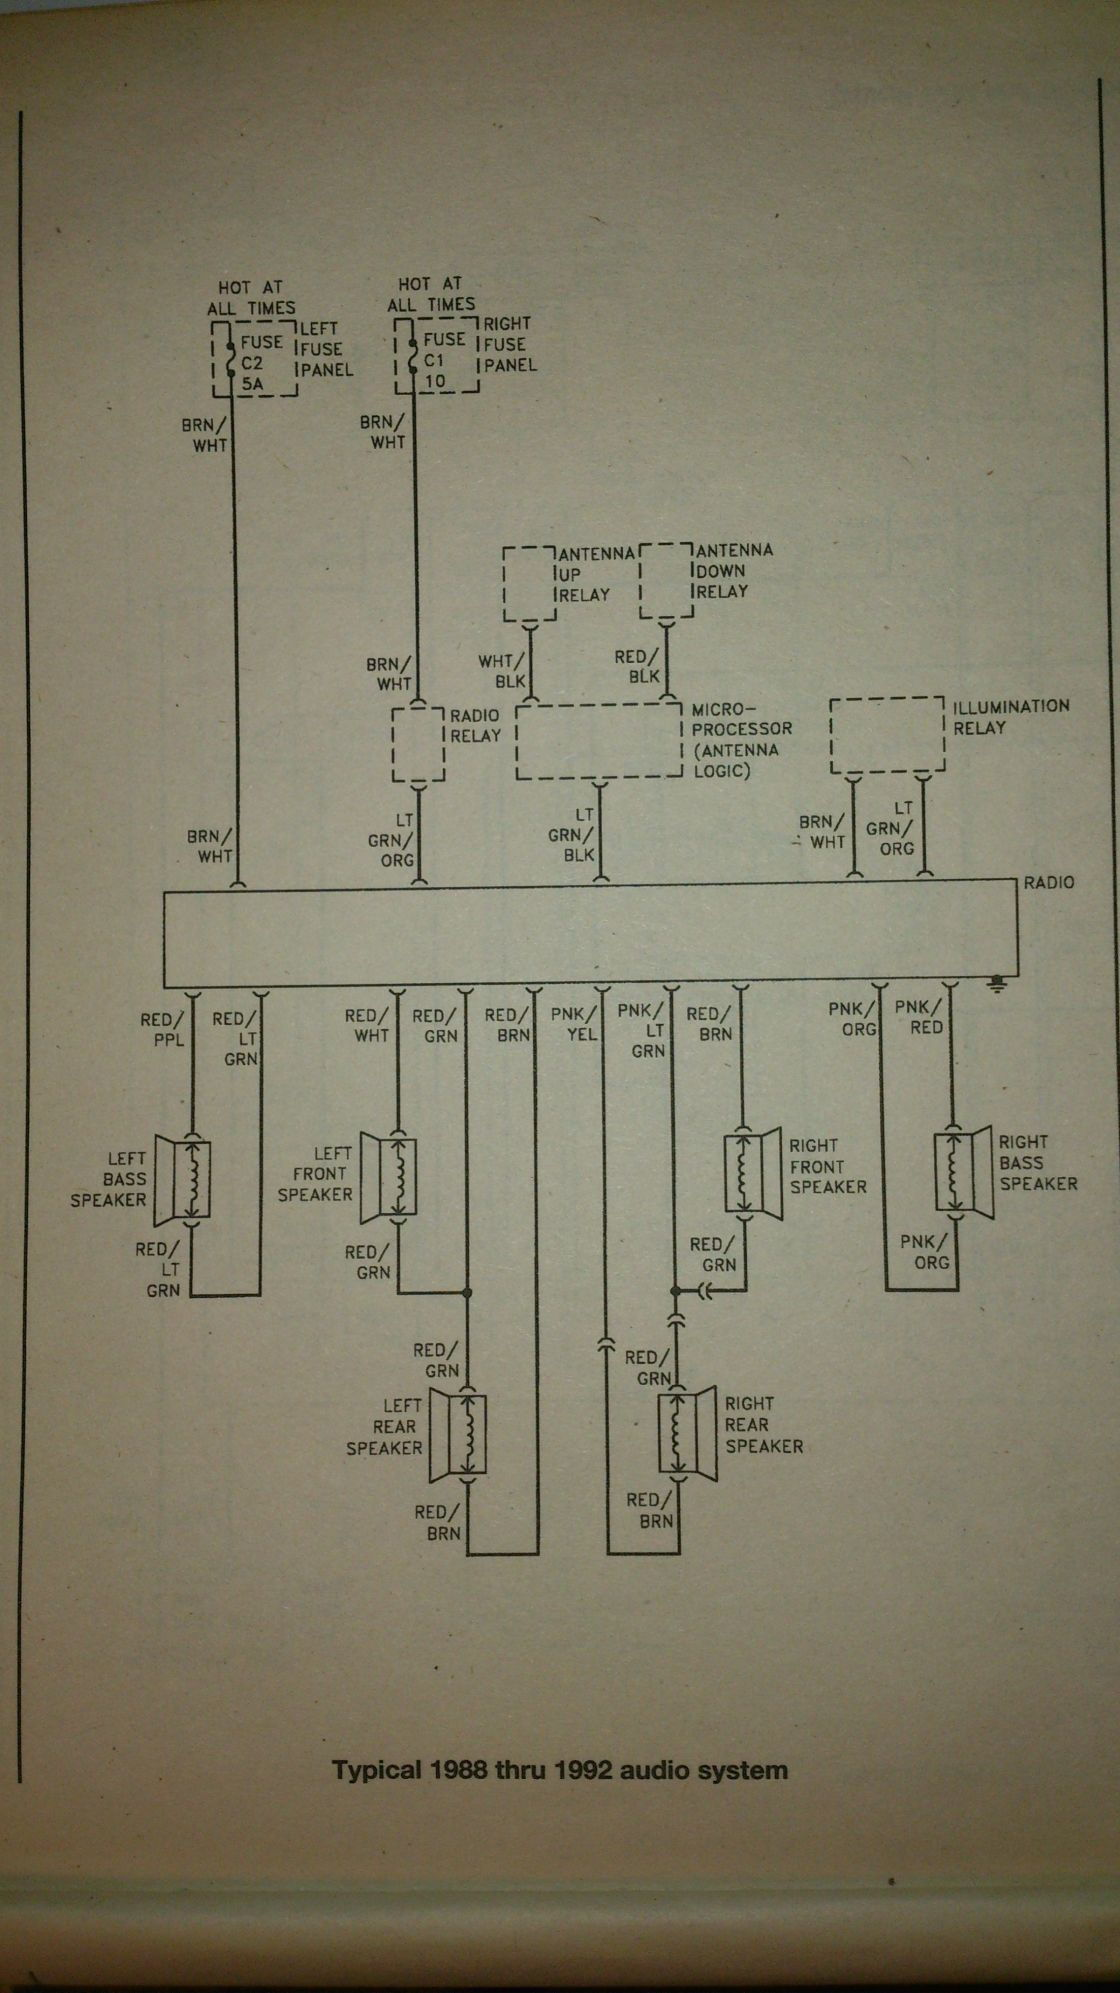 Stereo Wiring Help Jaguar Forums Enthusiasts Forum Radio I Cant Seem To Figure Out Just Copy A Couple Of Pages From The Manual Pdf File But Here Is Whole And Diagram On 10 11